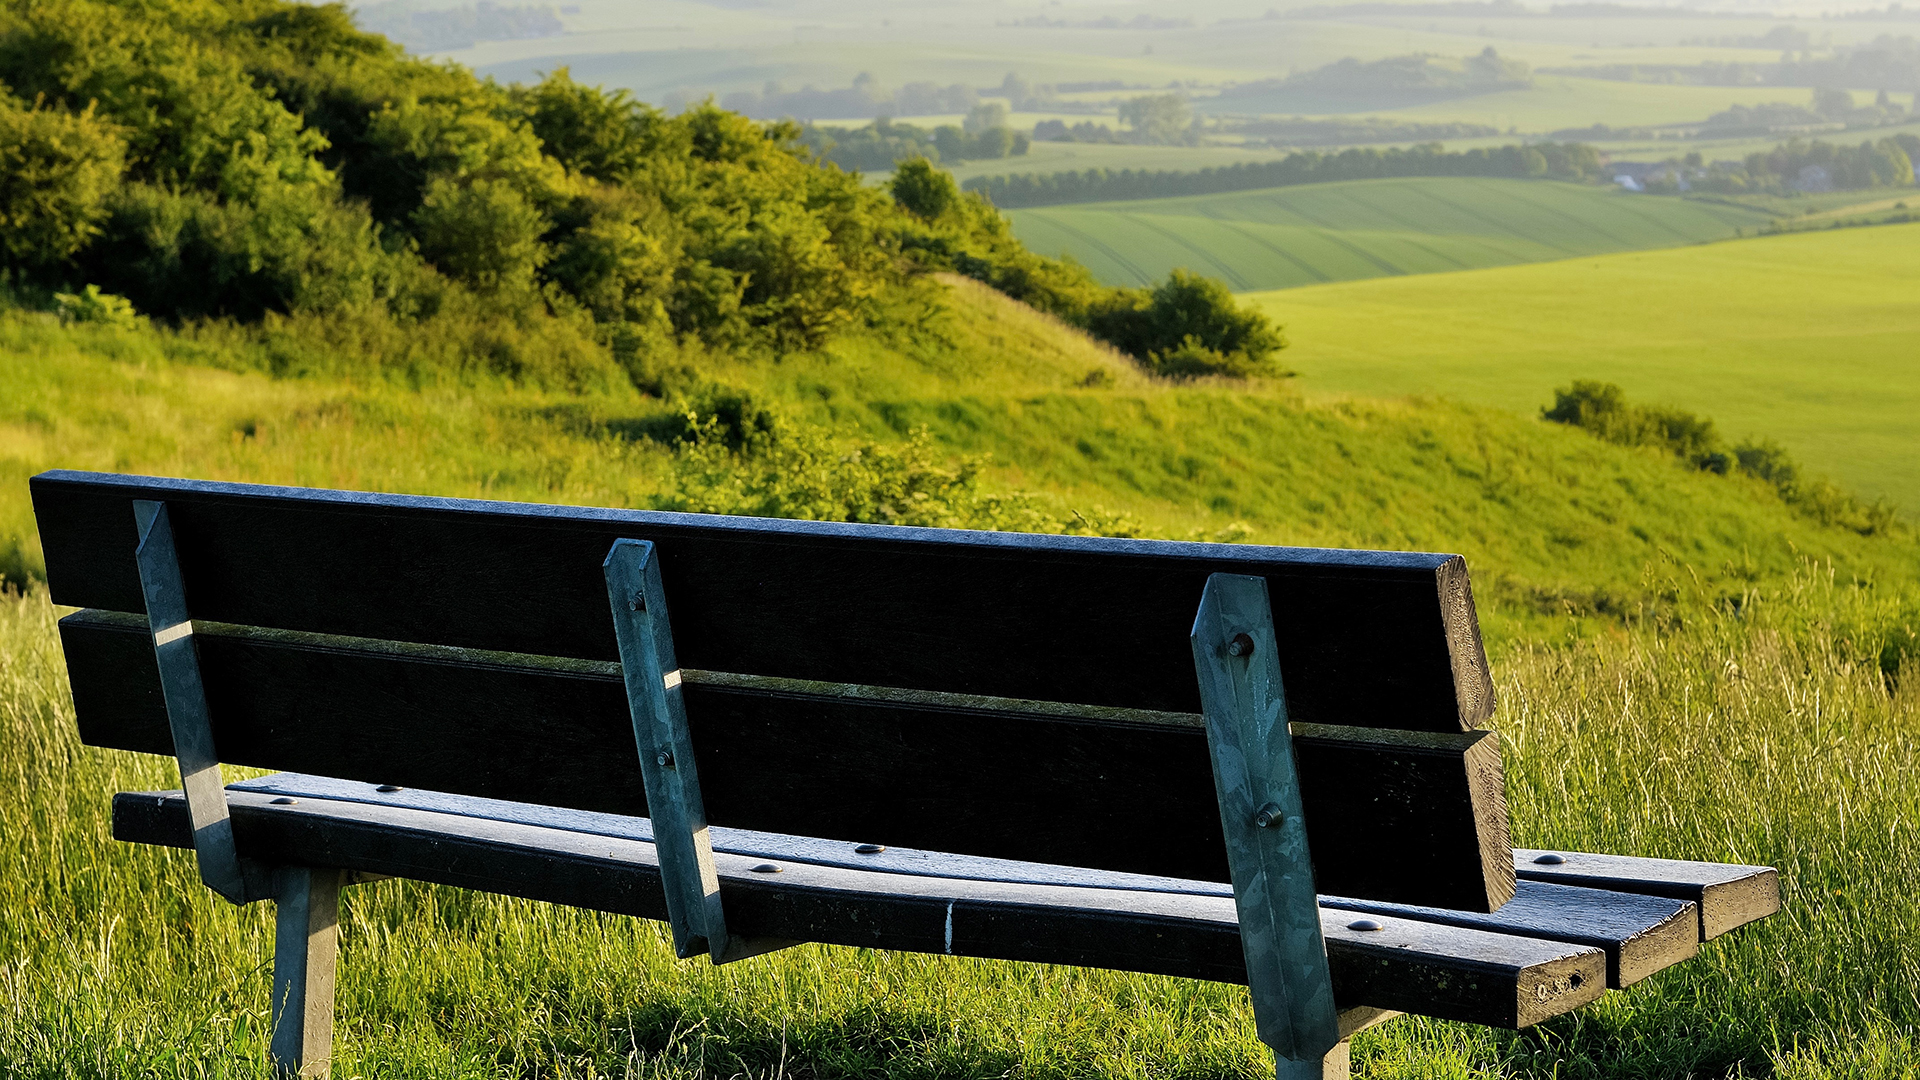 Looking across the view at Dunstable Downs